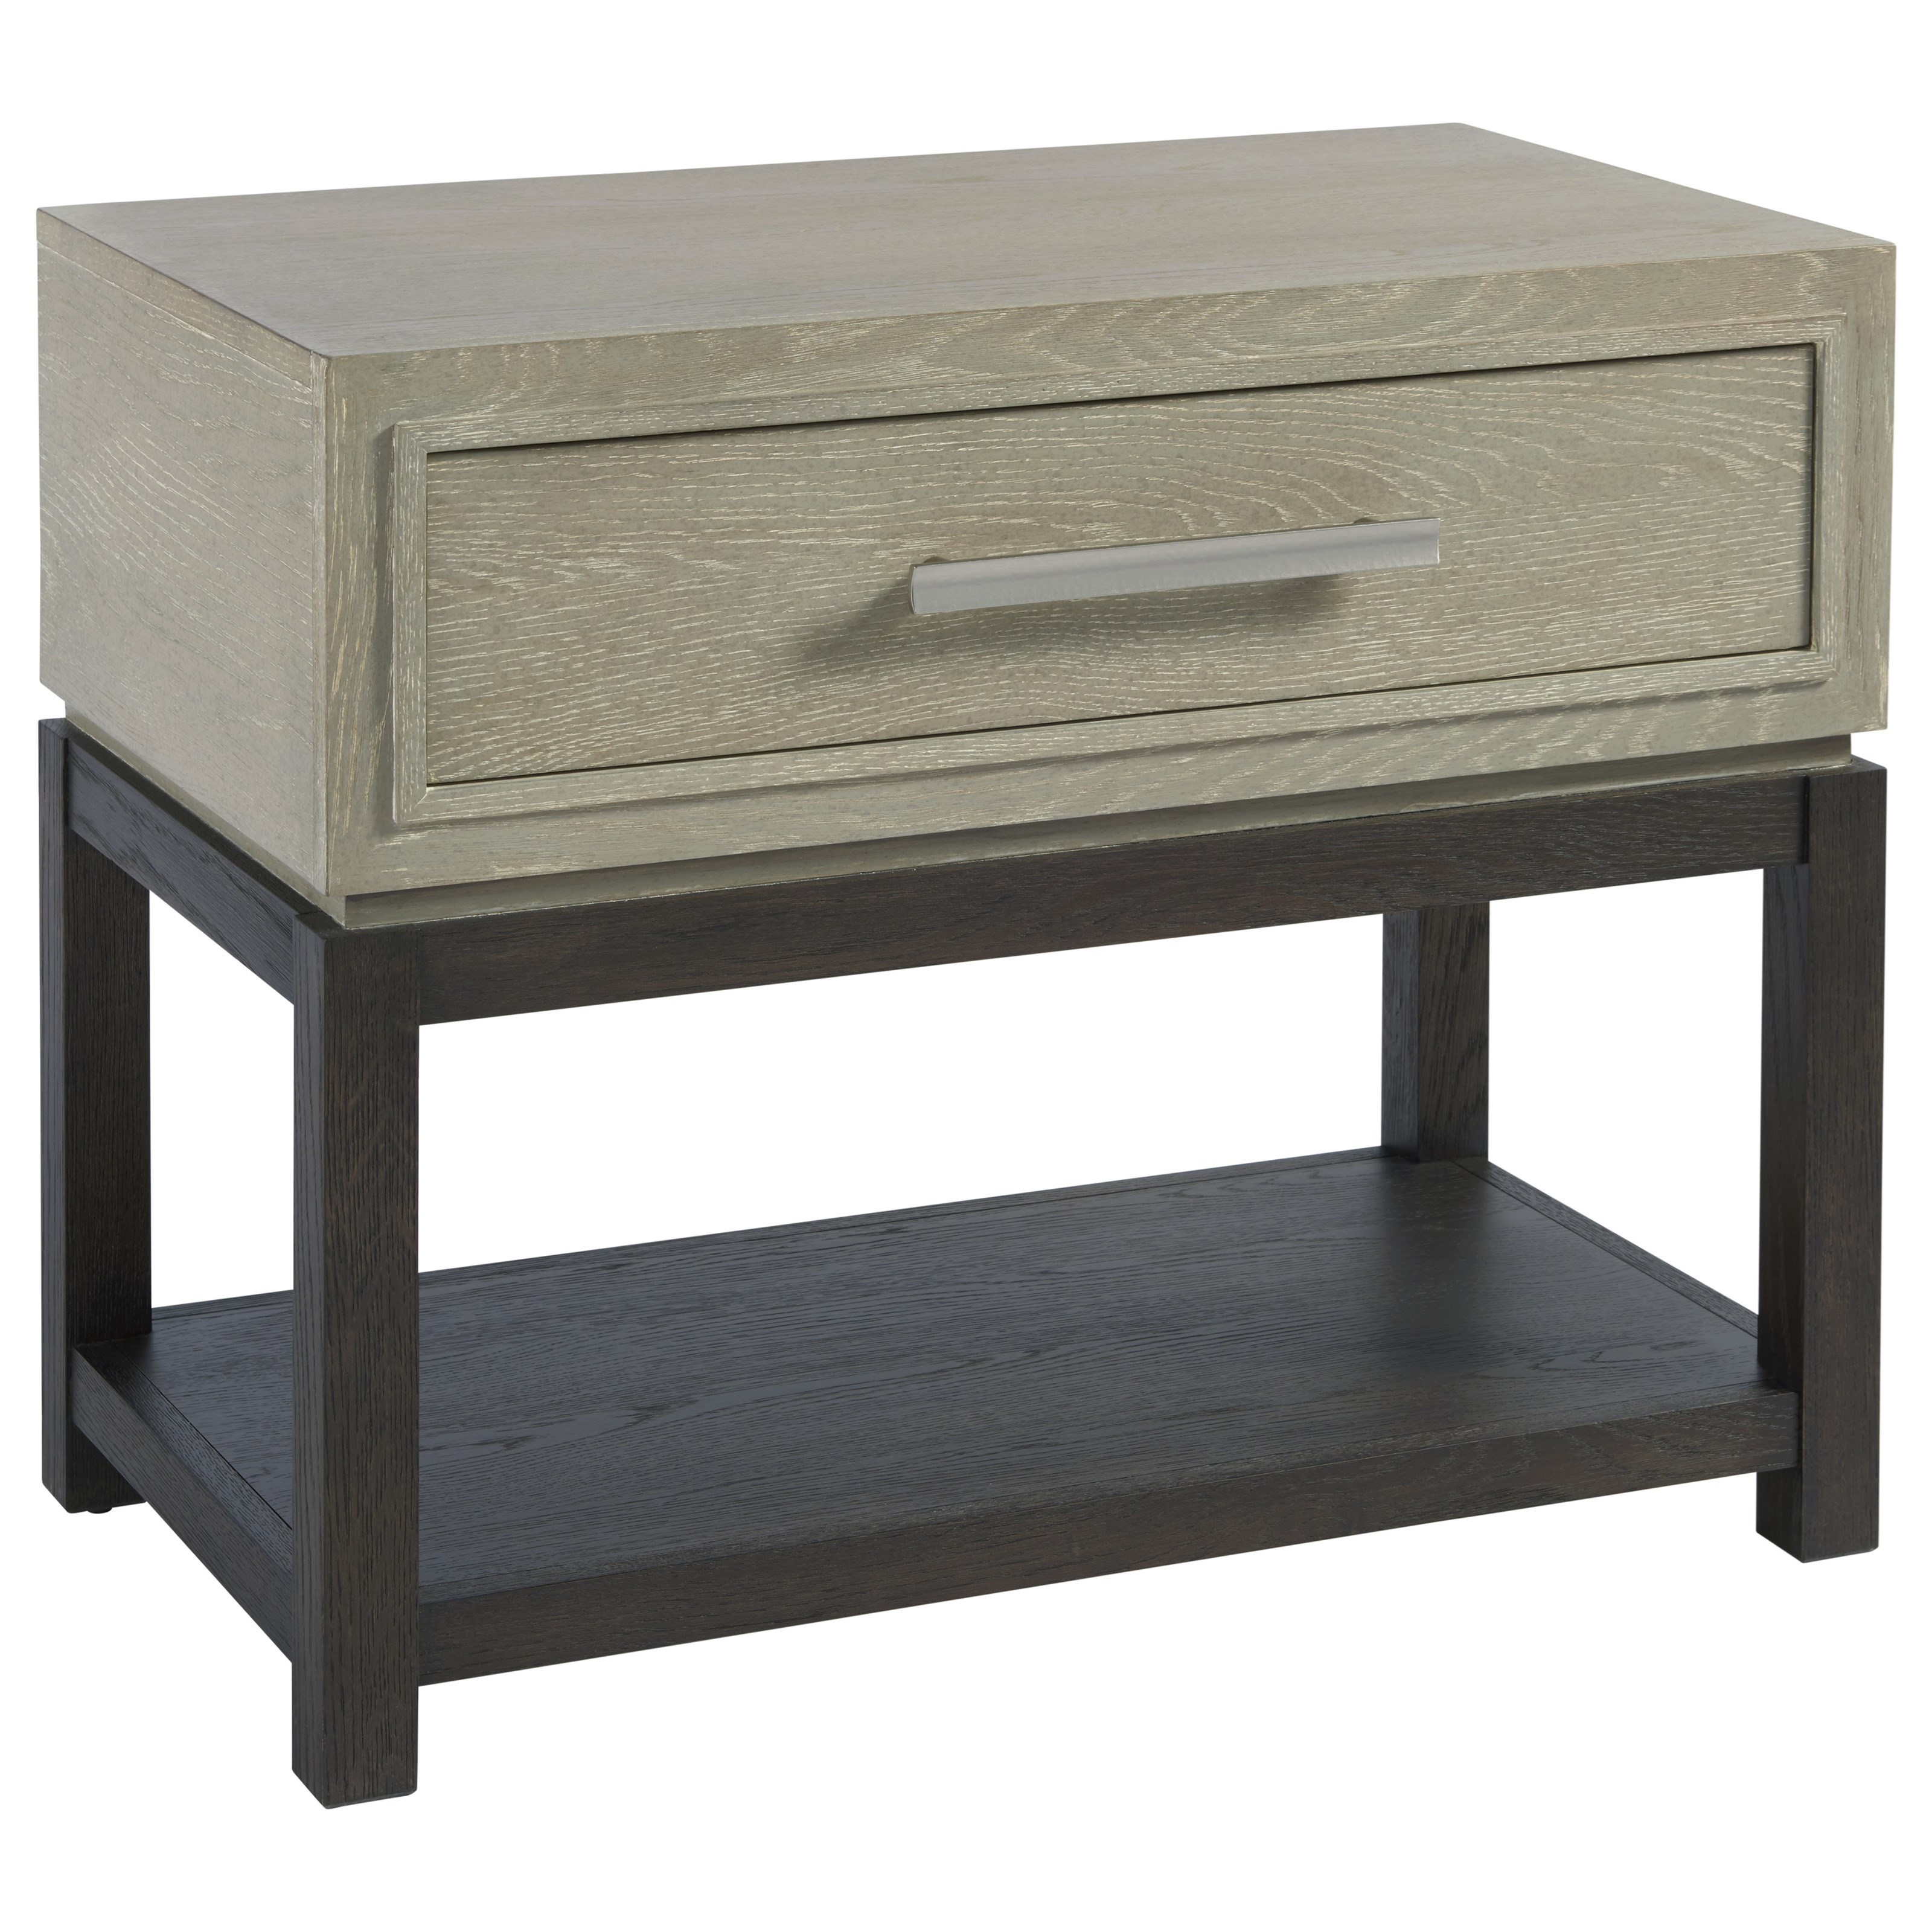 Zephyr Night Table by Universal at Baer's Furniture